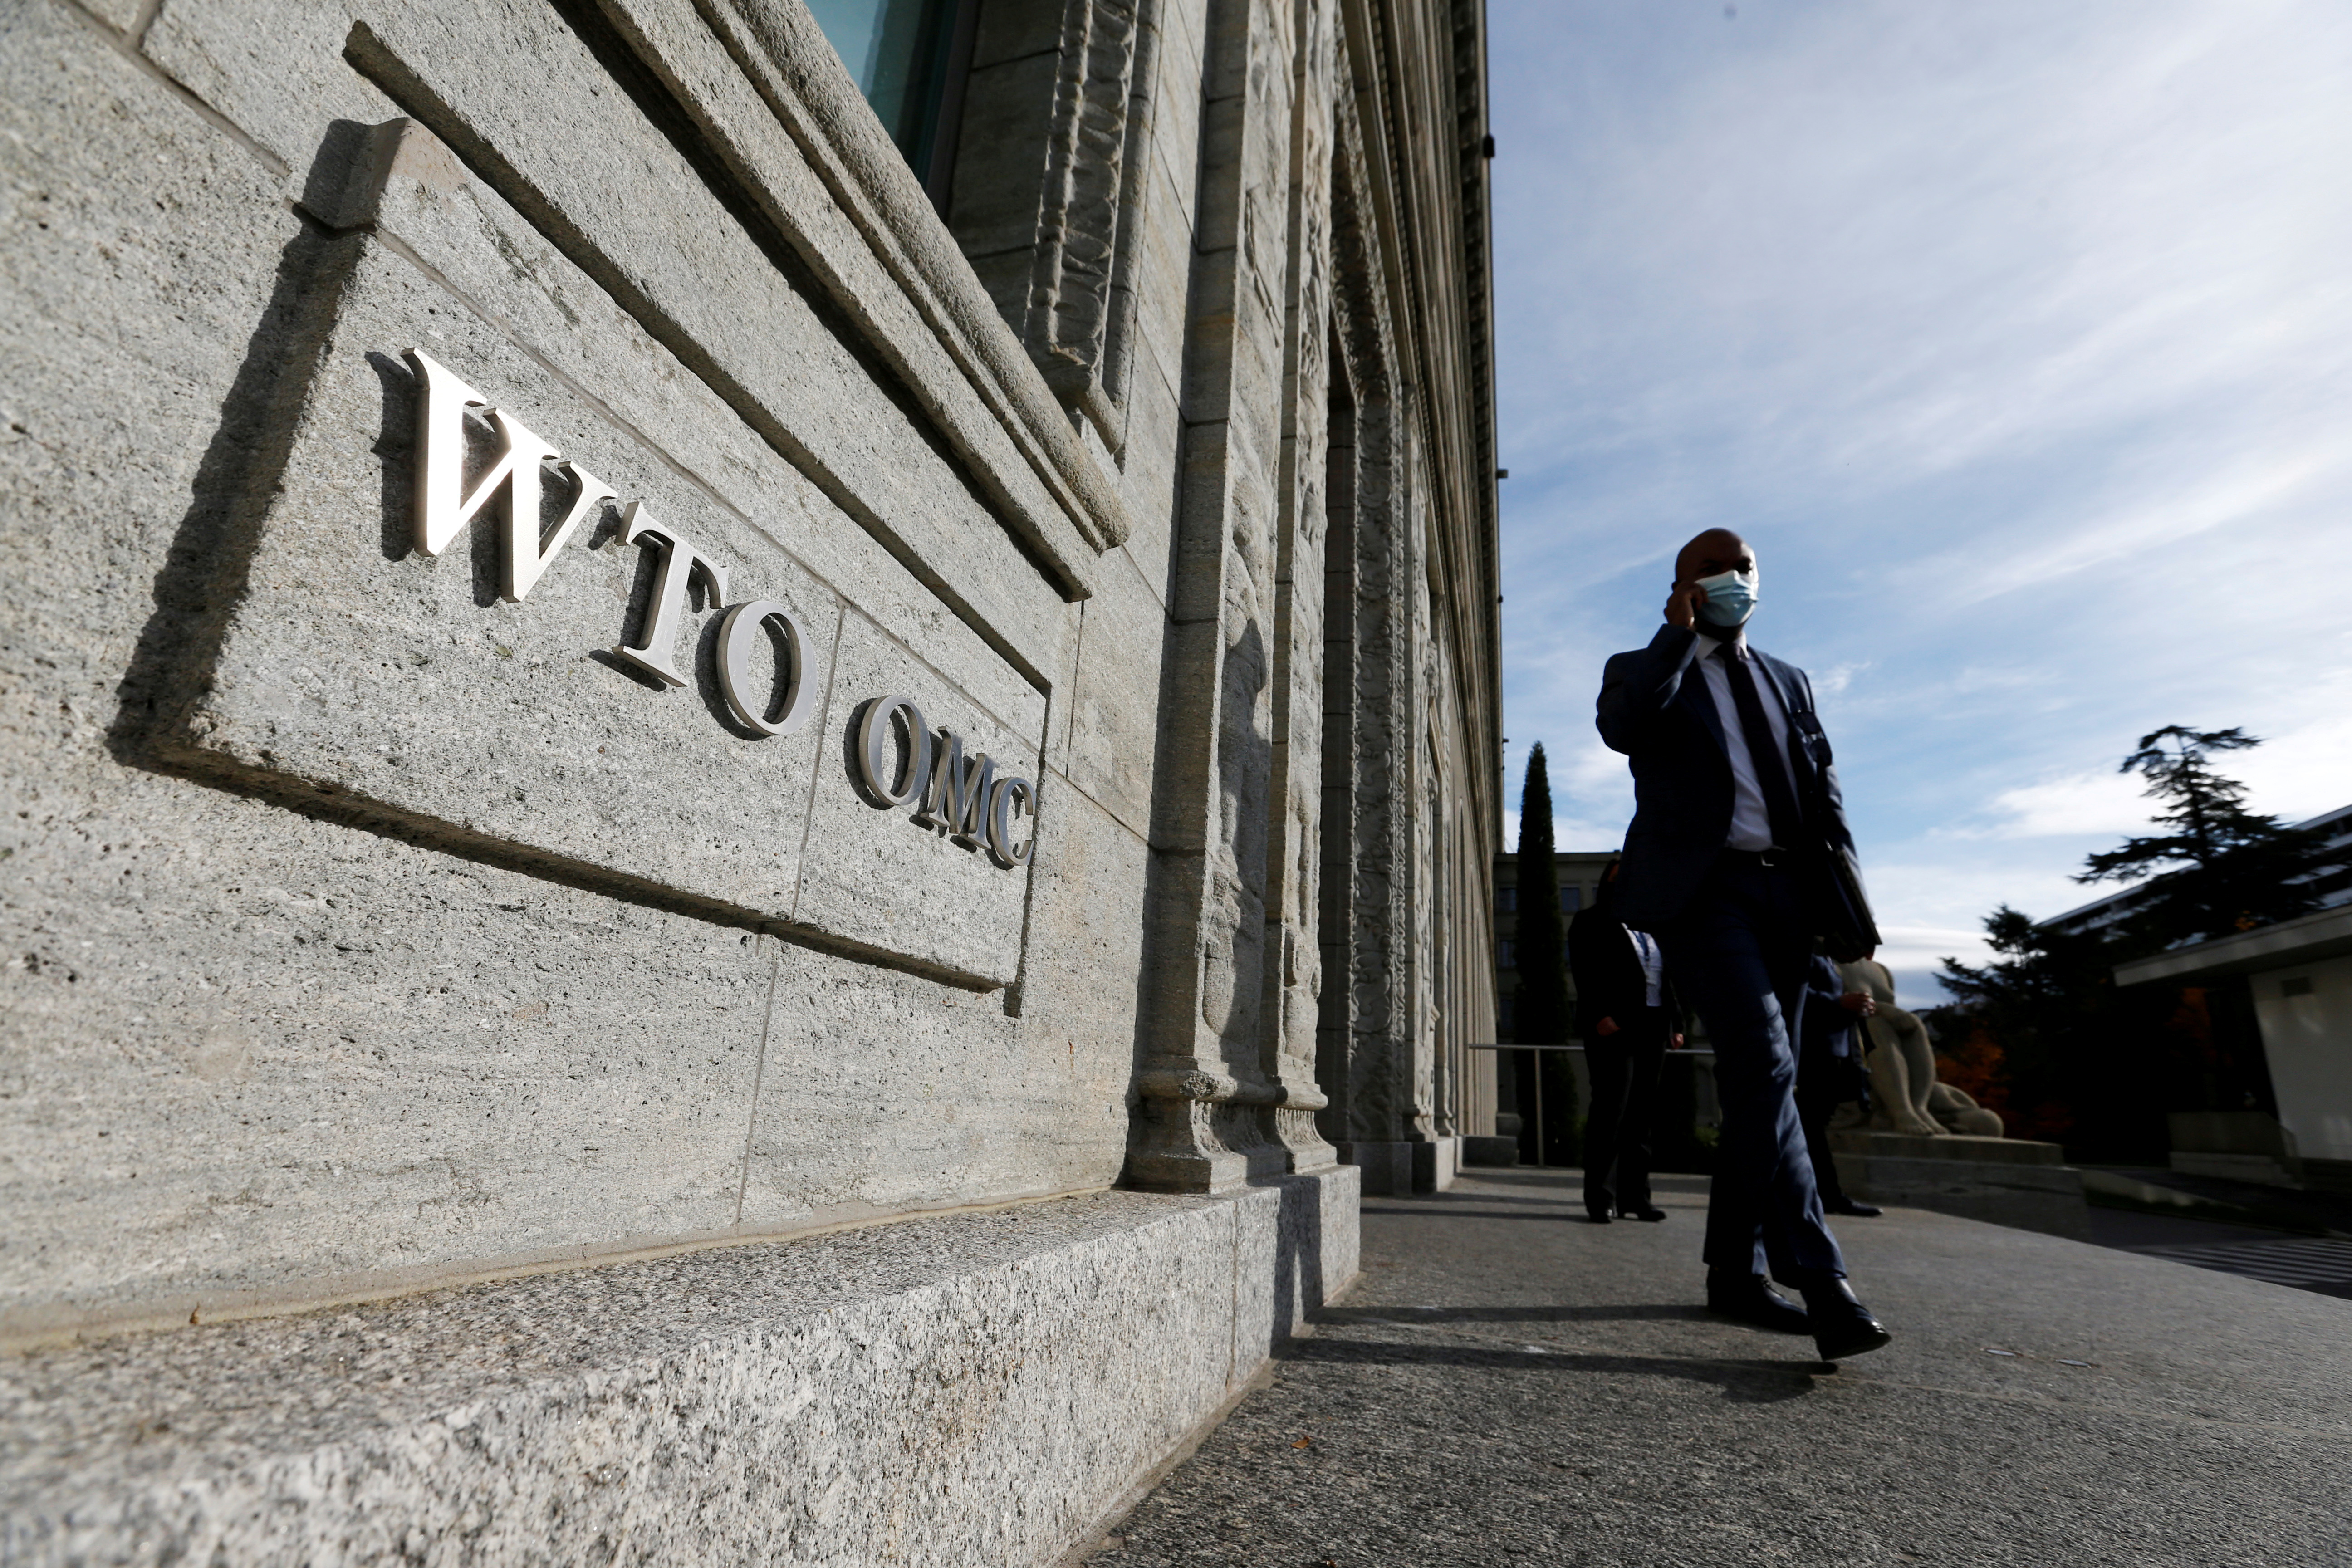 A delegate arrives before a meeting at the World Trade Organization (WTO) in Geneva, Switzerland, October 28, 2020. REUTERS/Denis Balibouse